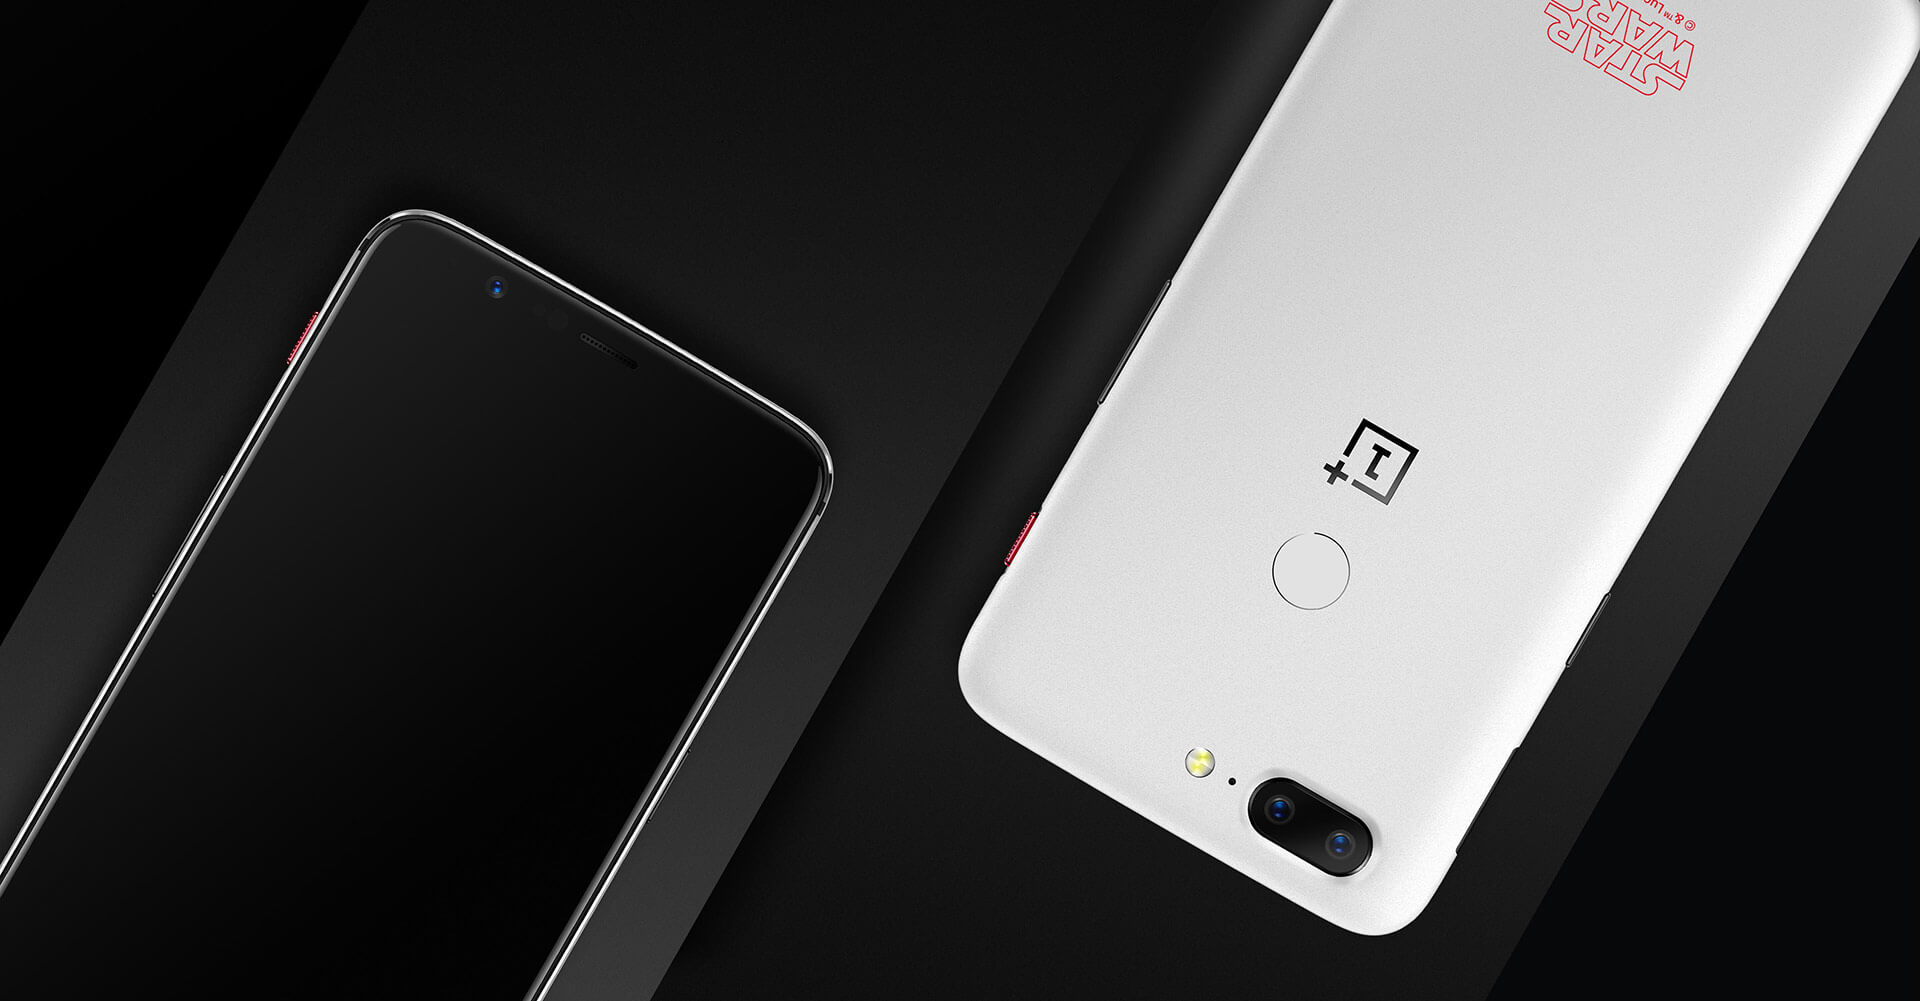 oneplus5t_star_wars_edition_smartphone_3